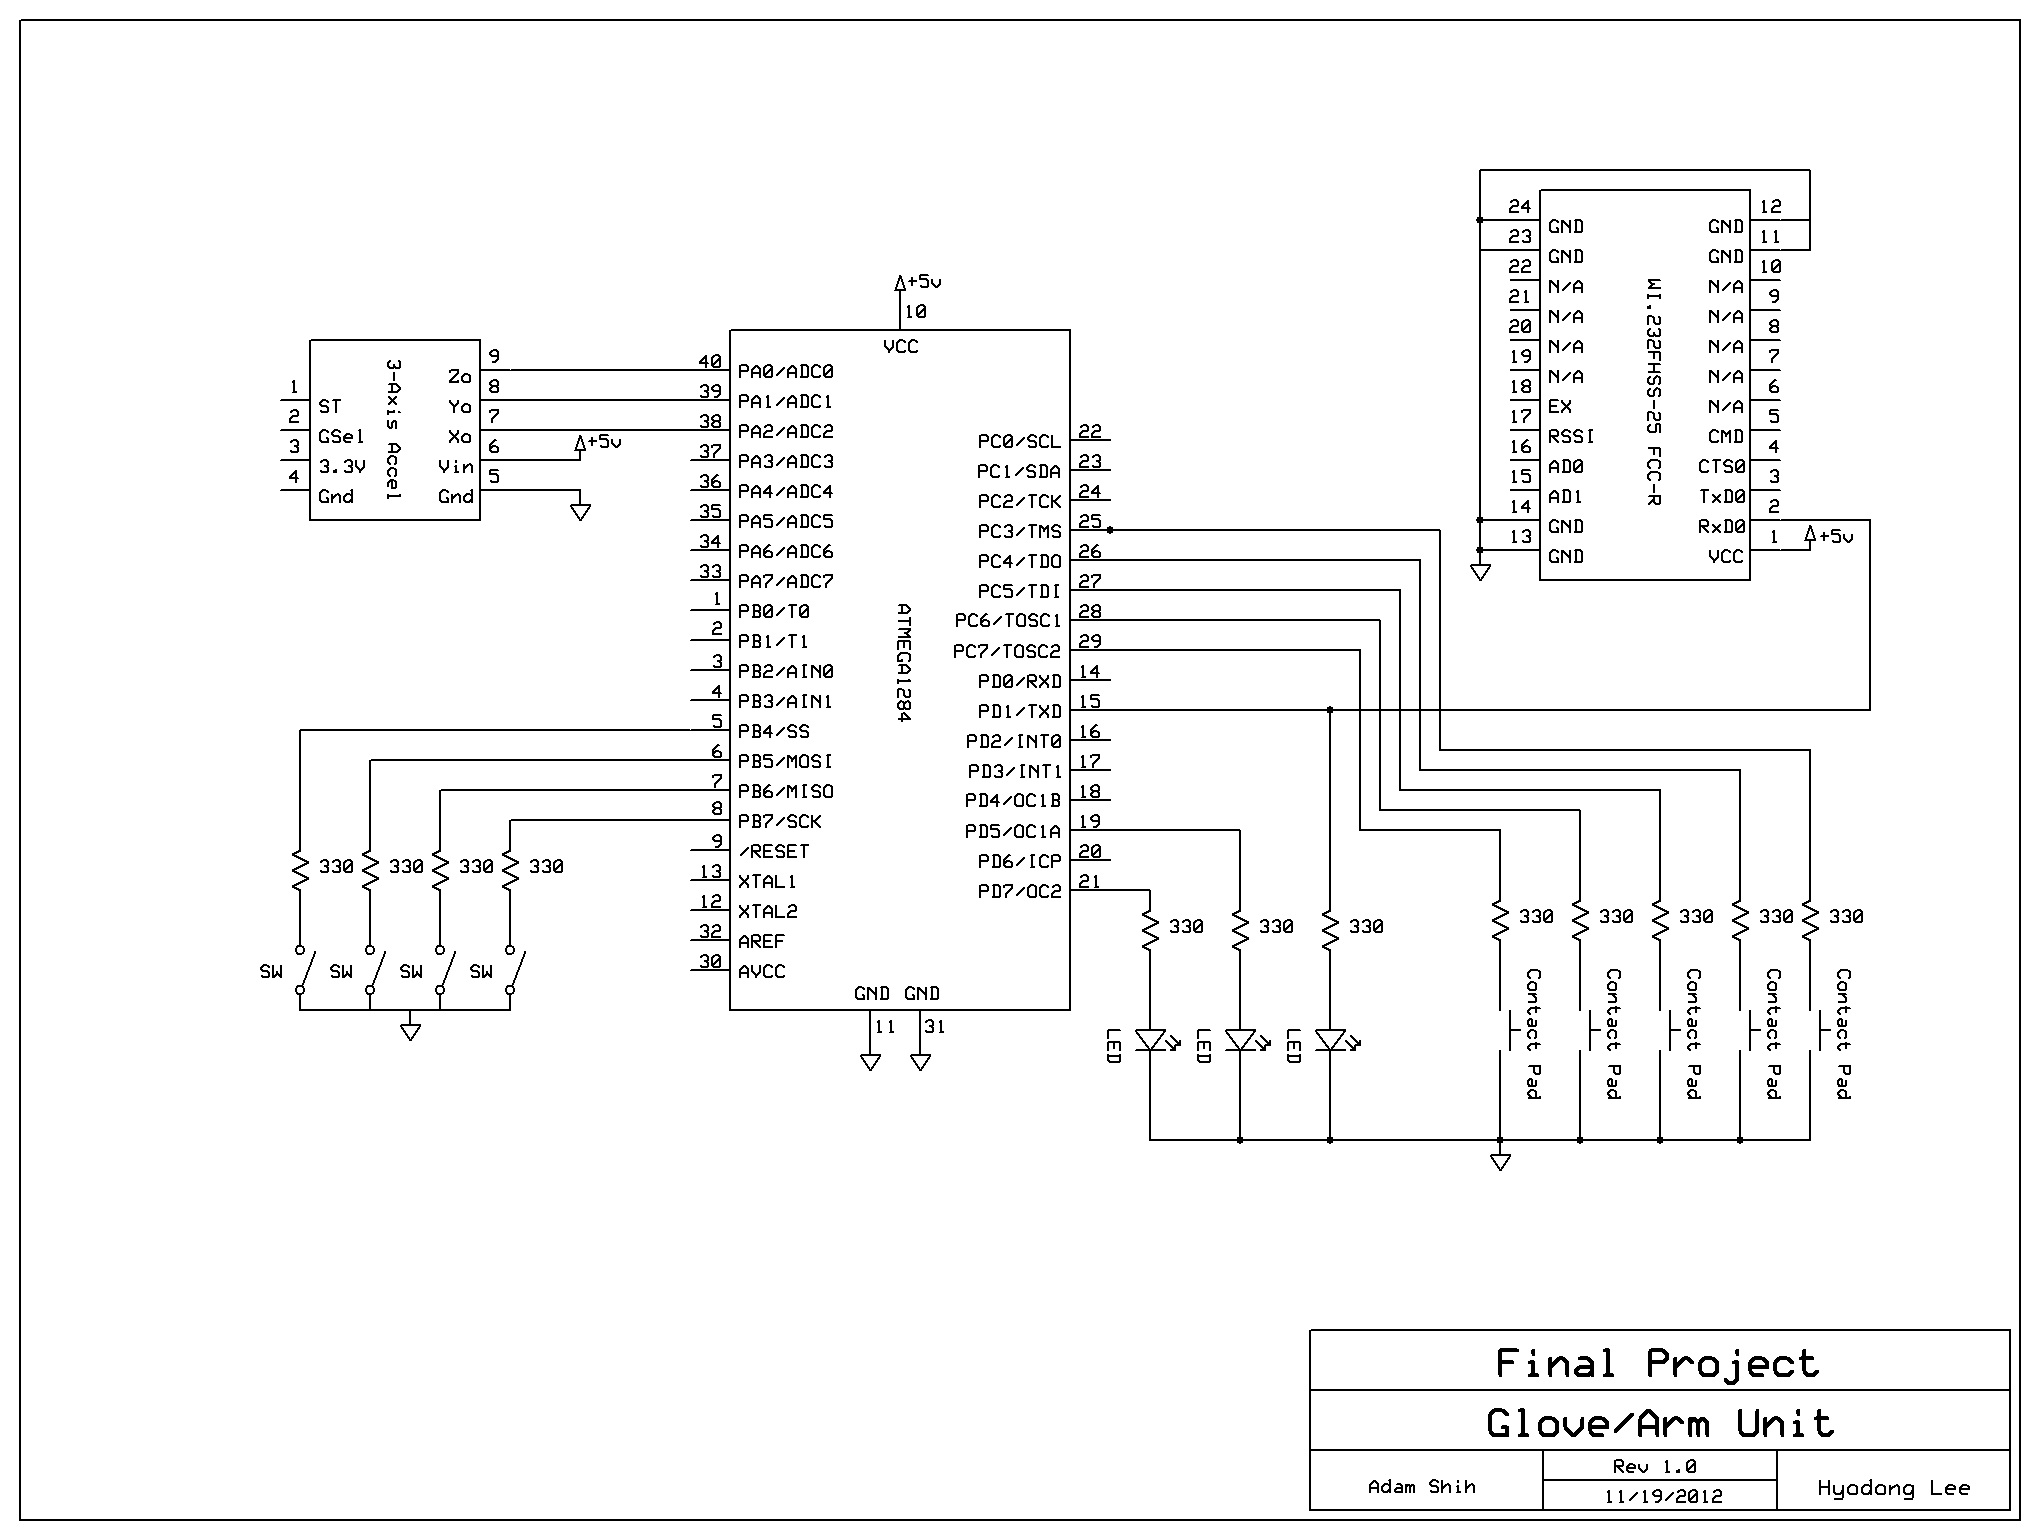 usb 2 0 wiring diagram kilowatt hour meter glove mouse - ece 4760